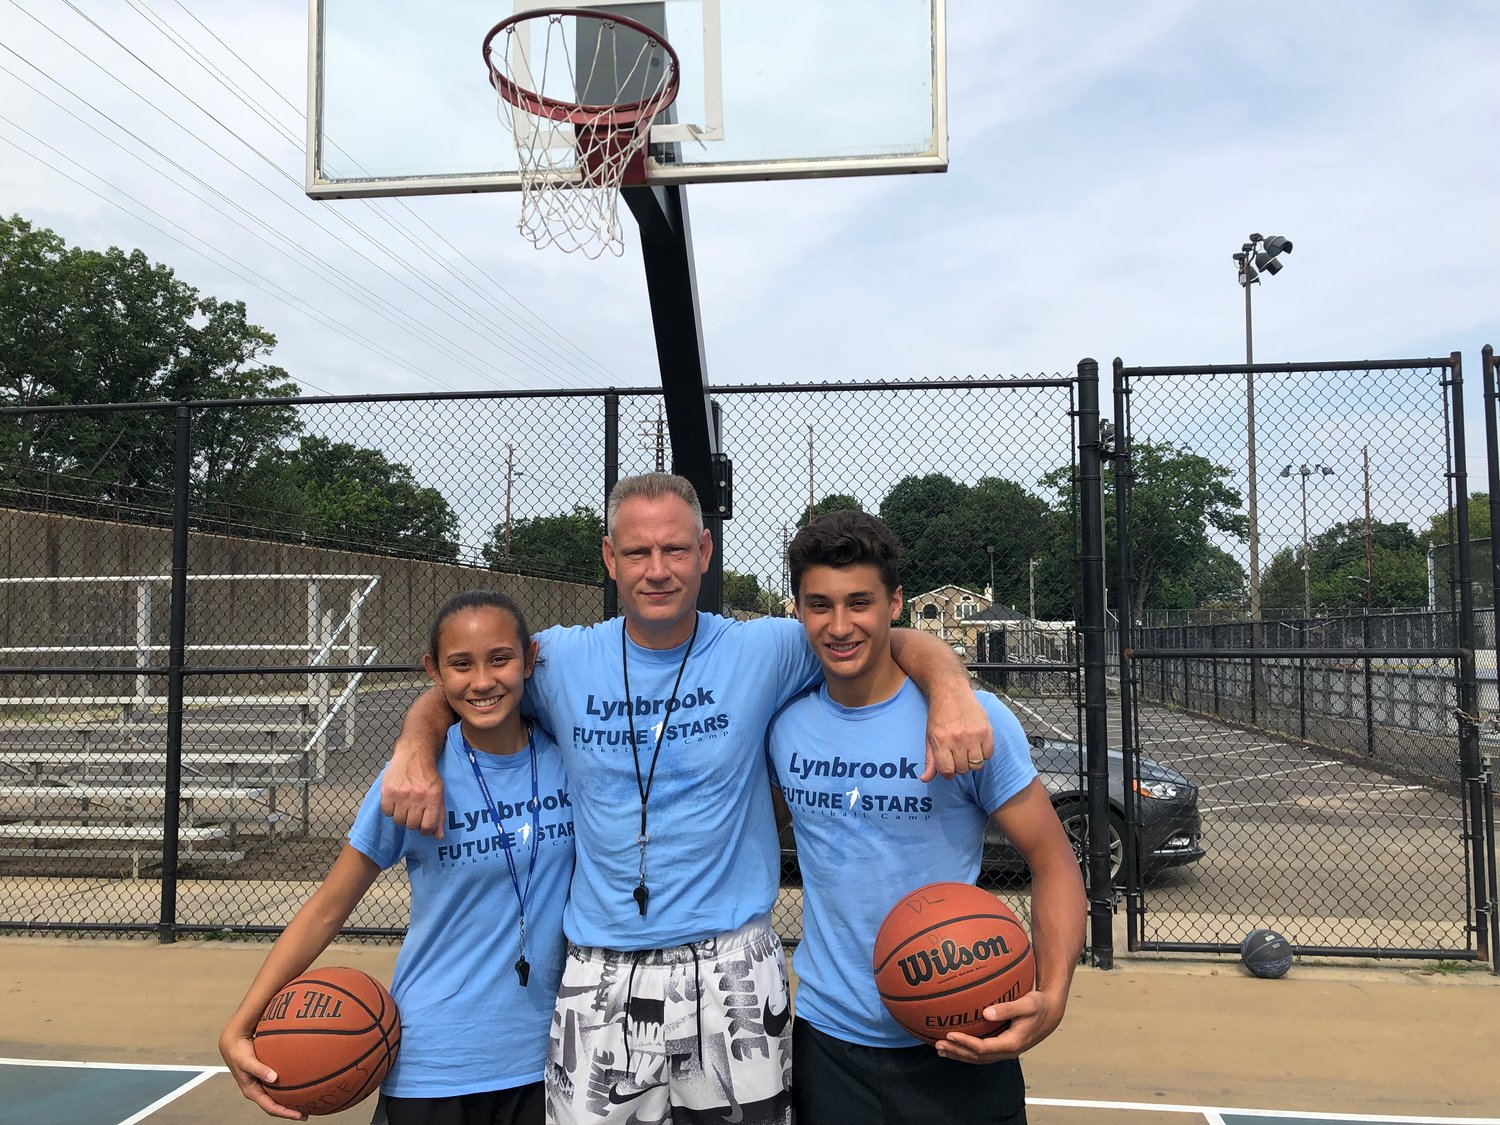 Kevin McMahon, director of Lynbrook Future Stars, center, led the camp with help from his daughter, Meghan McMahon, a counselor for three years and Rylan Blondo, a counselor for two years.